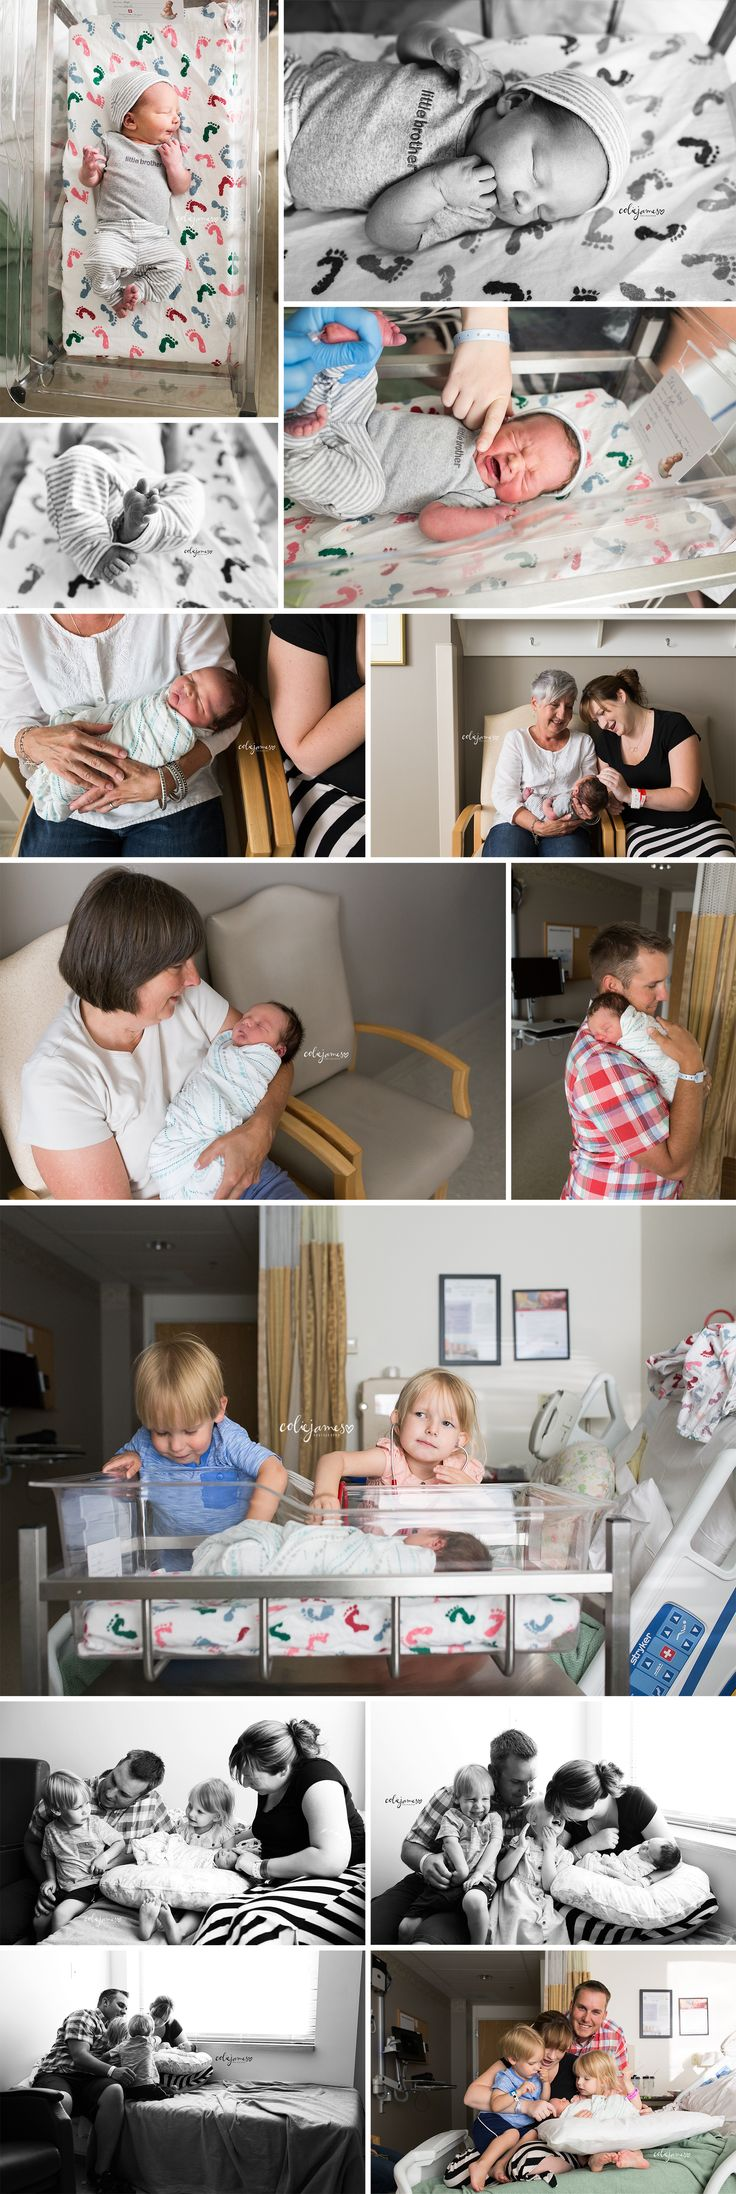 Fresh 48 Session, Fort Collins Hospital Newborn Photography - Poudre Valley Hospital   Meet Henry - Boulder - Ft Collins - Denver Newborn Photography - Lifestyle Storytelling Sessions by Colie James Photography